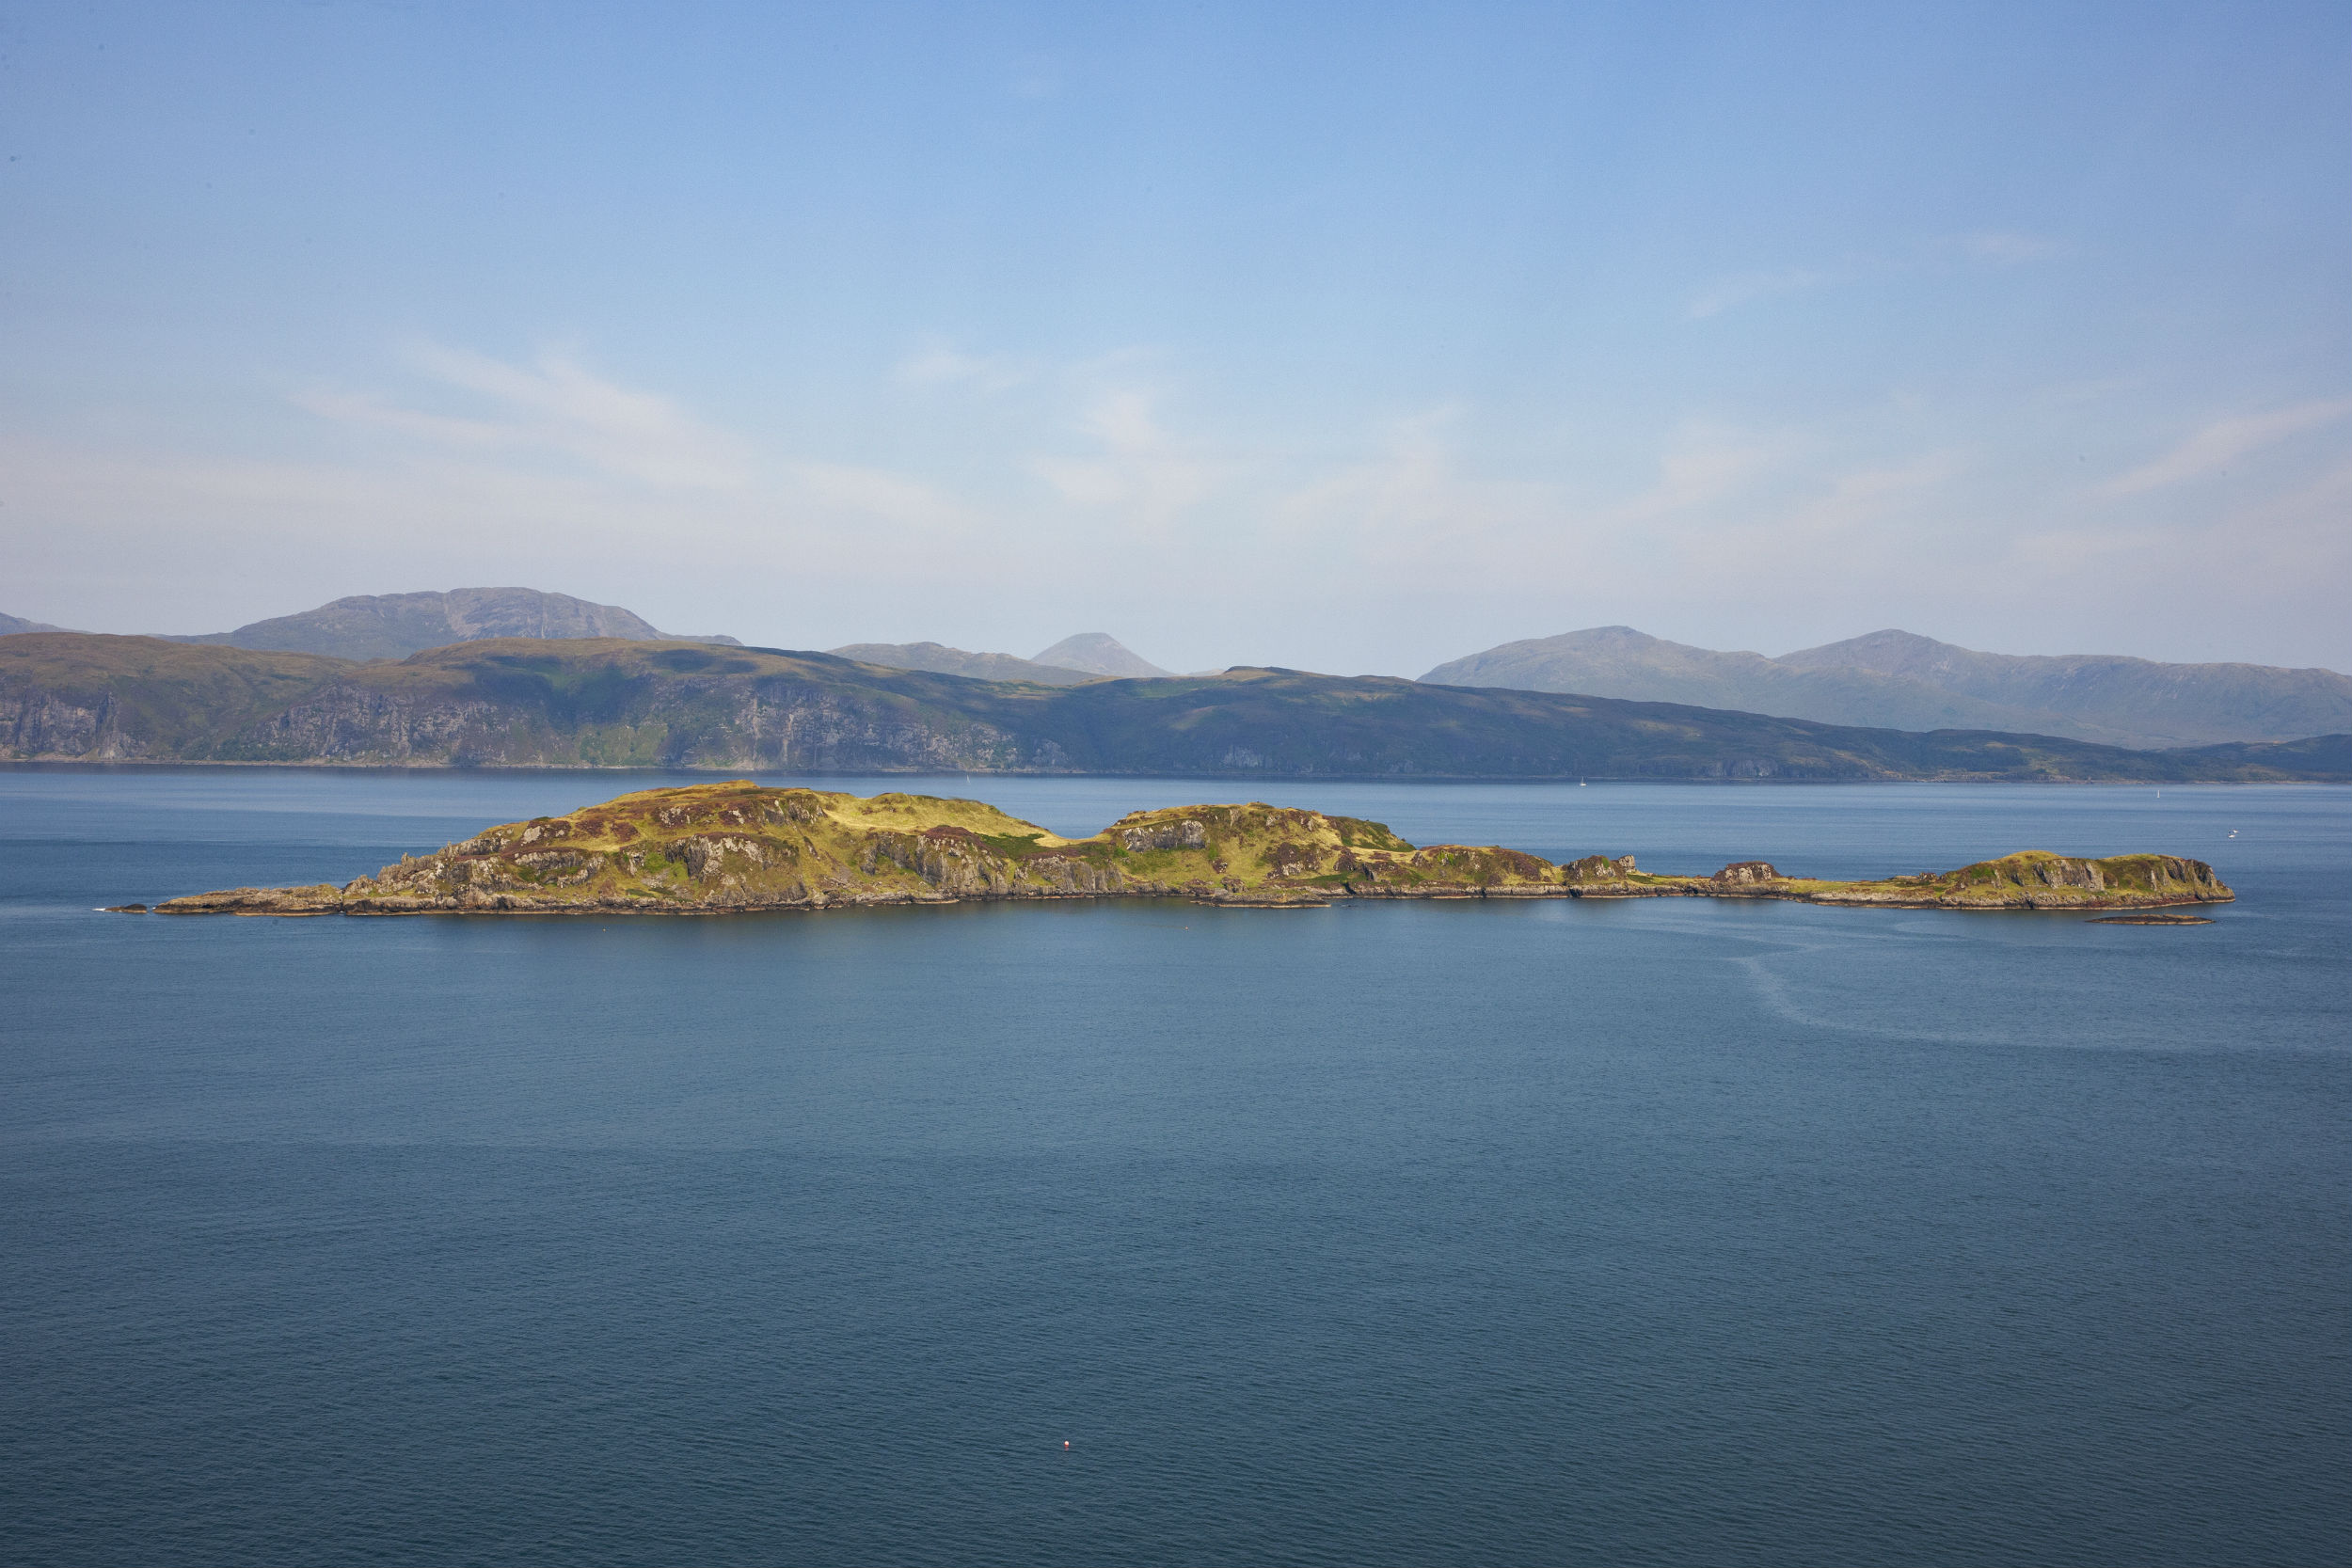 A Picture of Insh Island